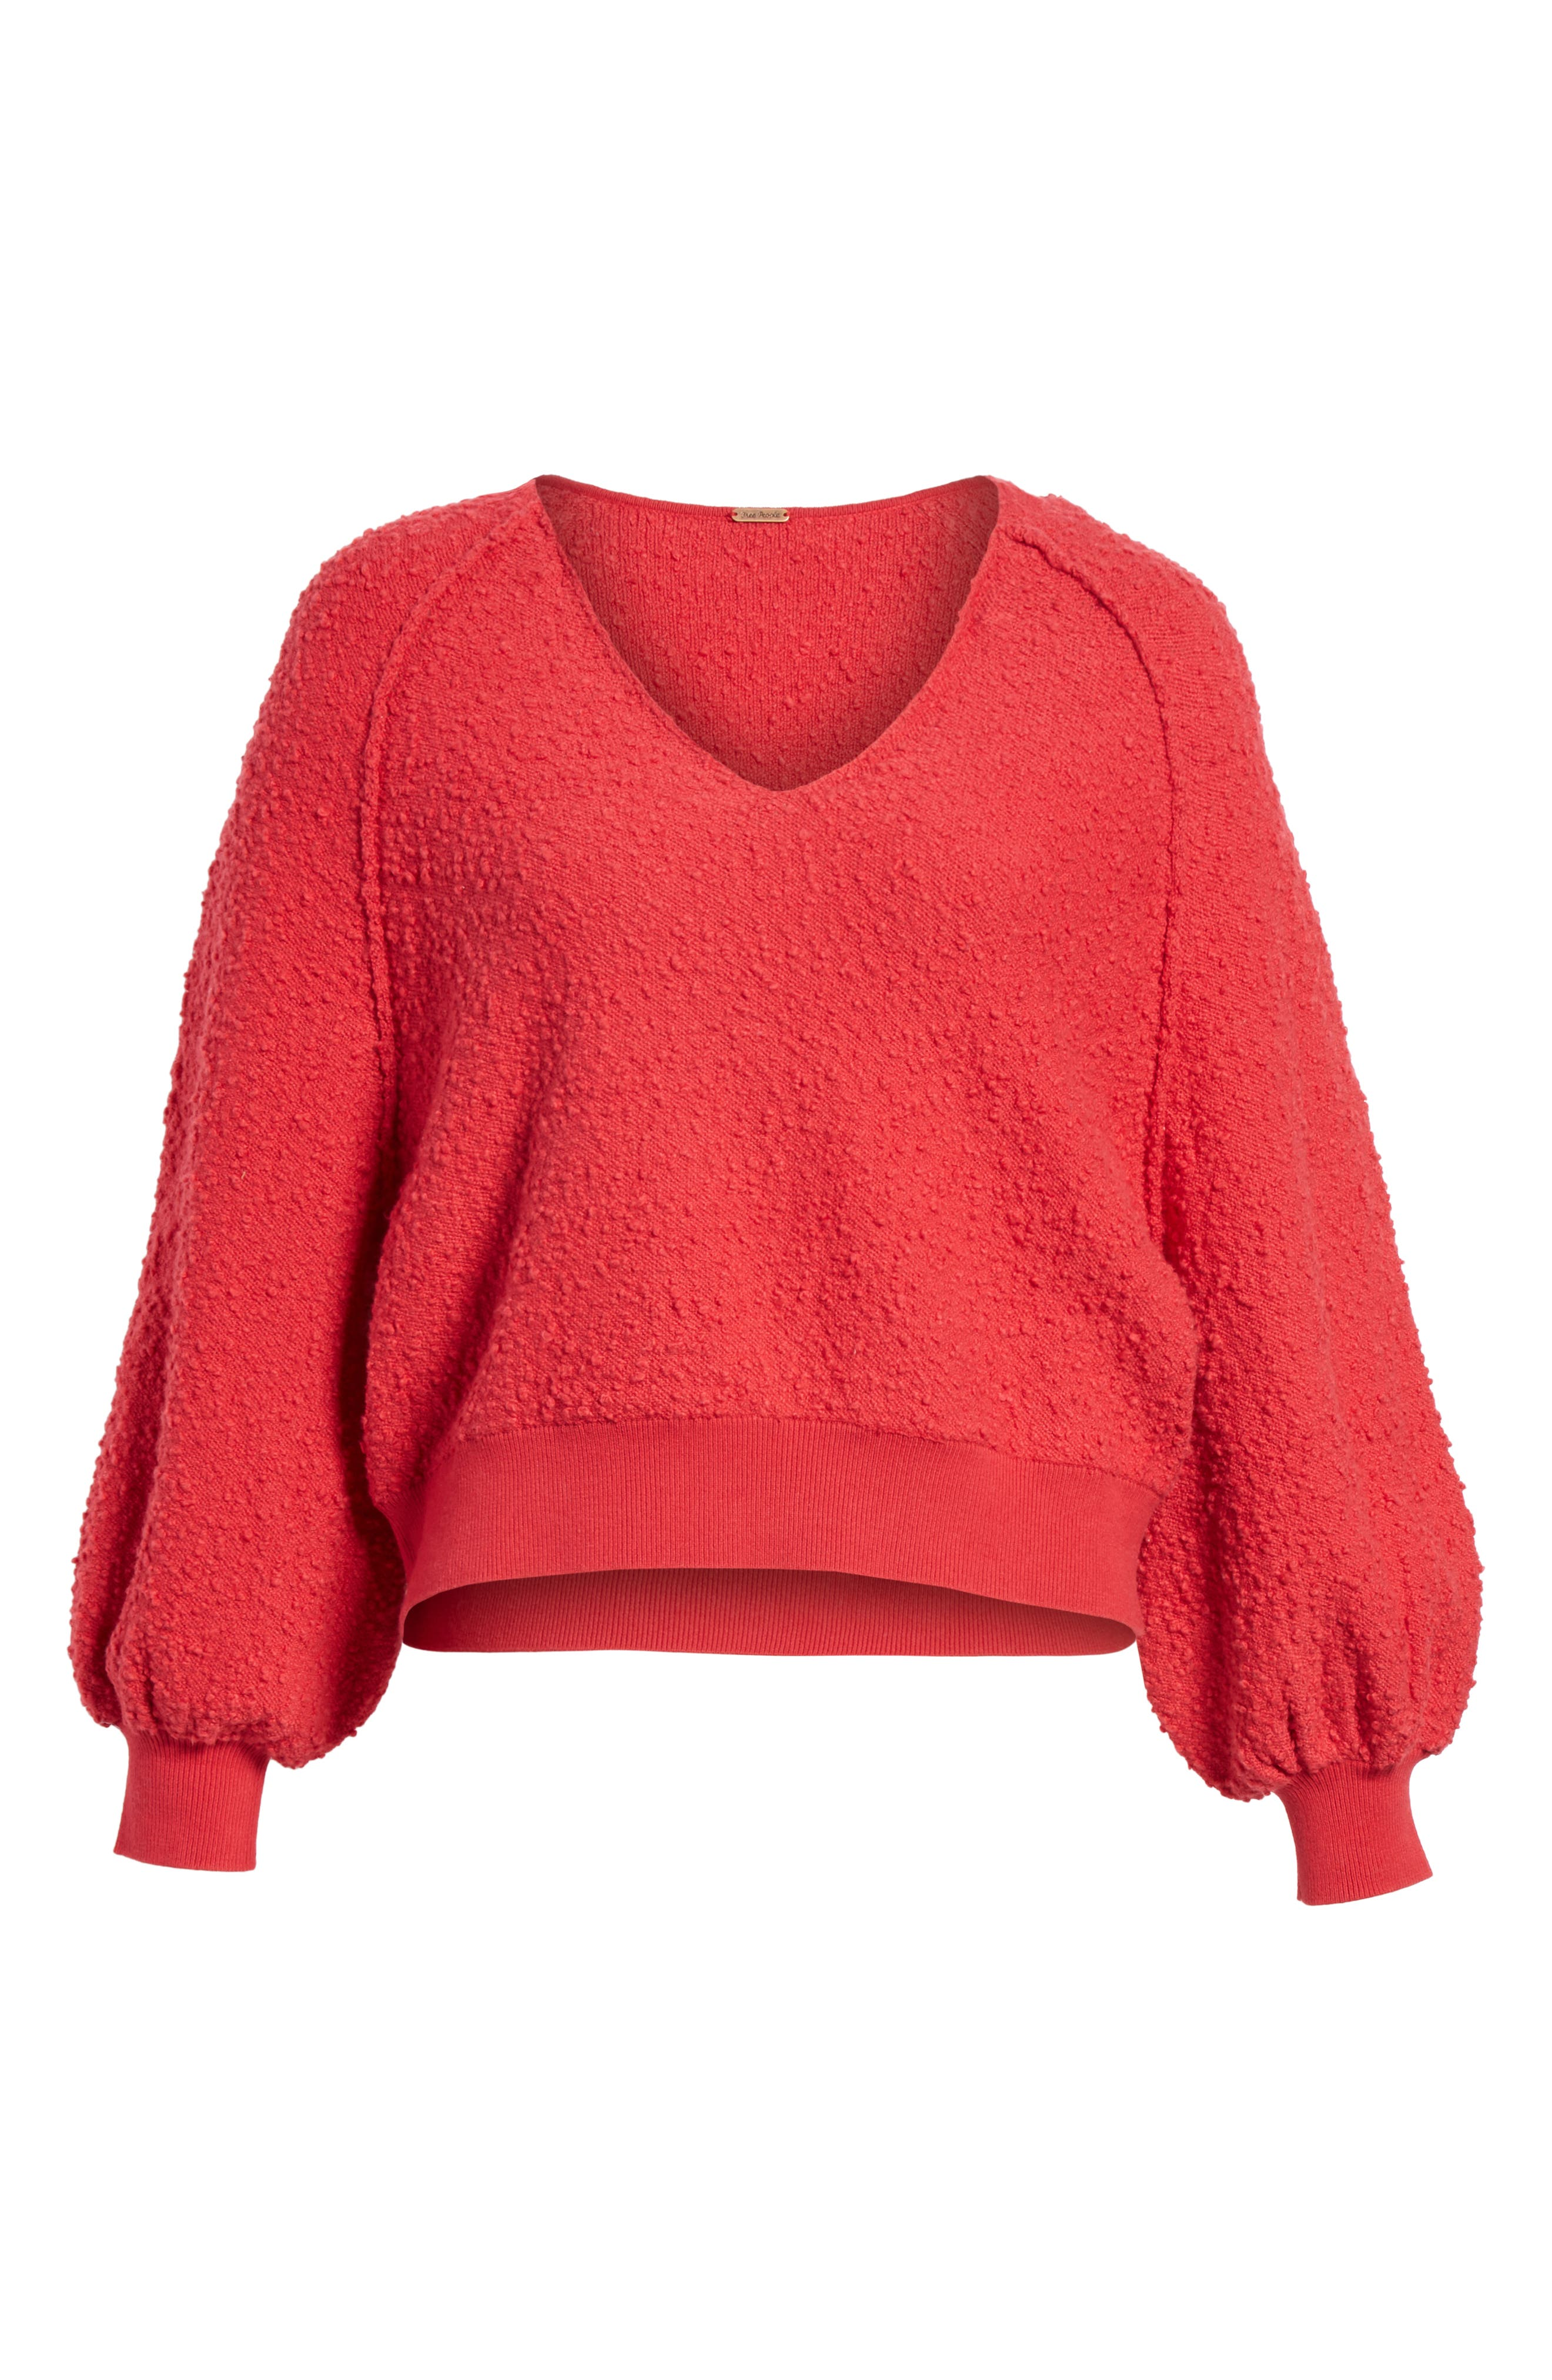 Found My Friend Sweater,                             Alternate thumbnail 6, color,                             Red